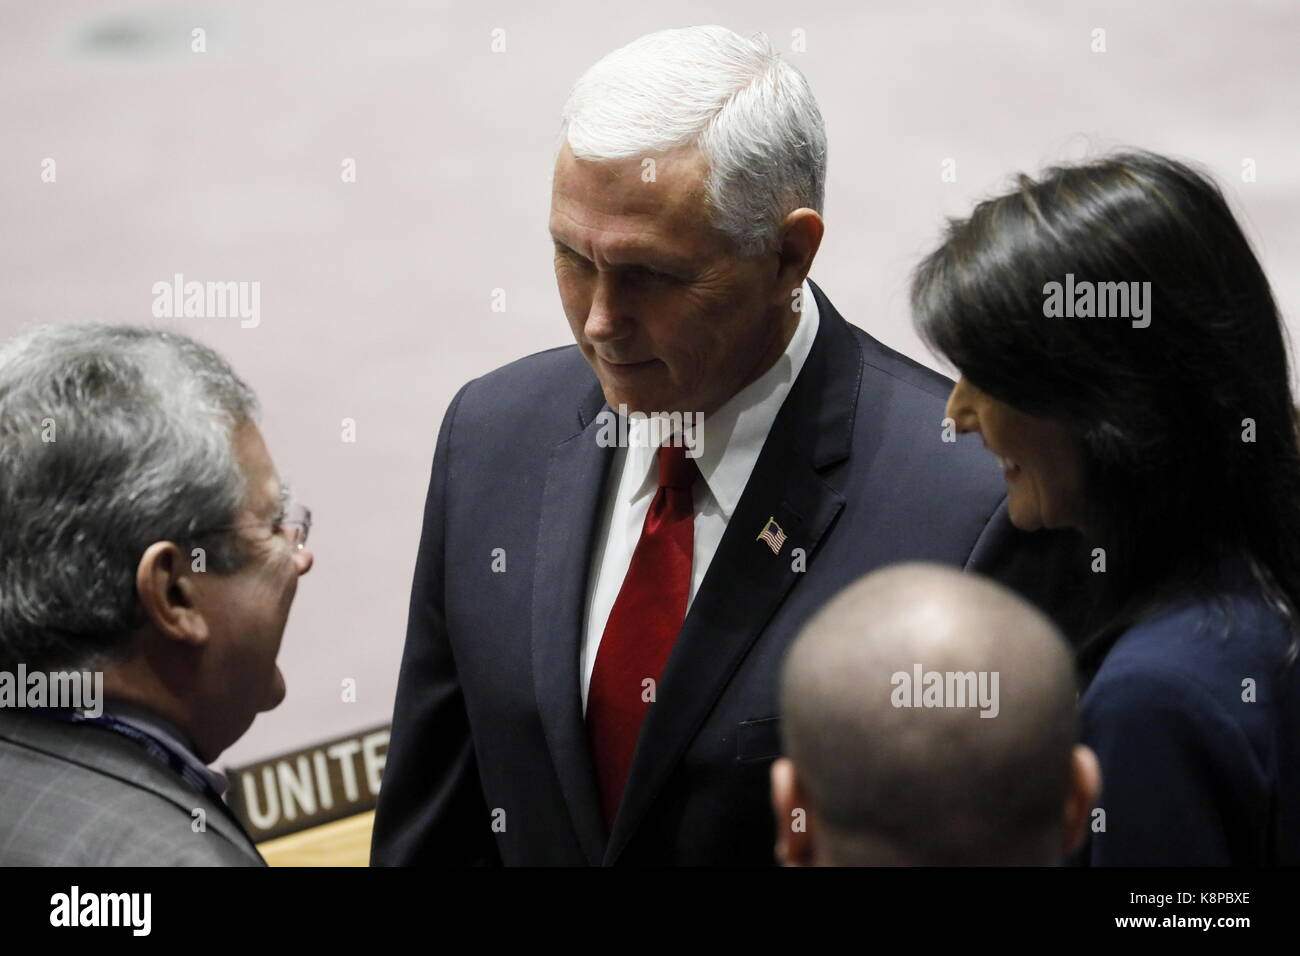 New York City, Usa. 20th Sep, 2017. Vice President Mike Pence (C) of the United States and United States Permanent - Stock Image